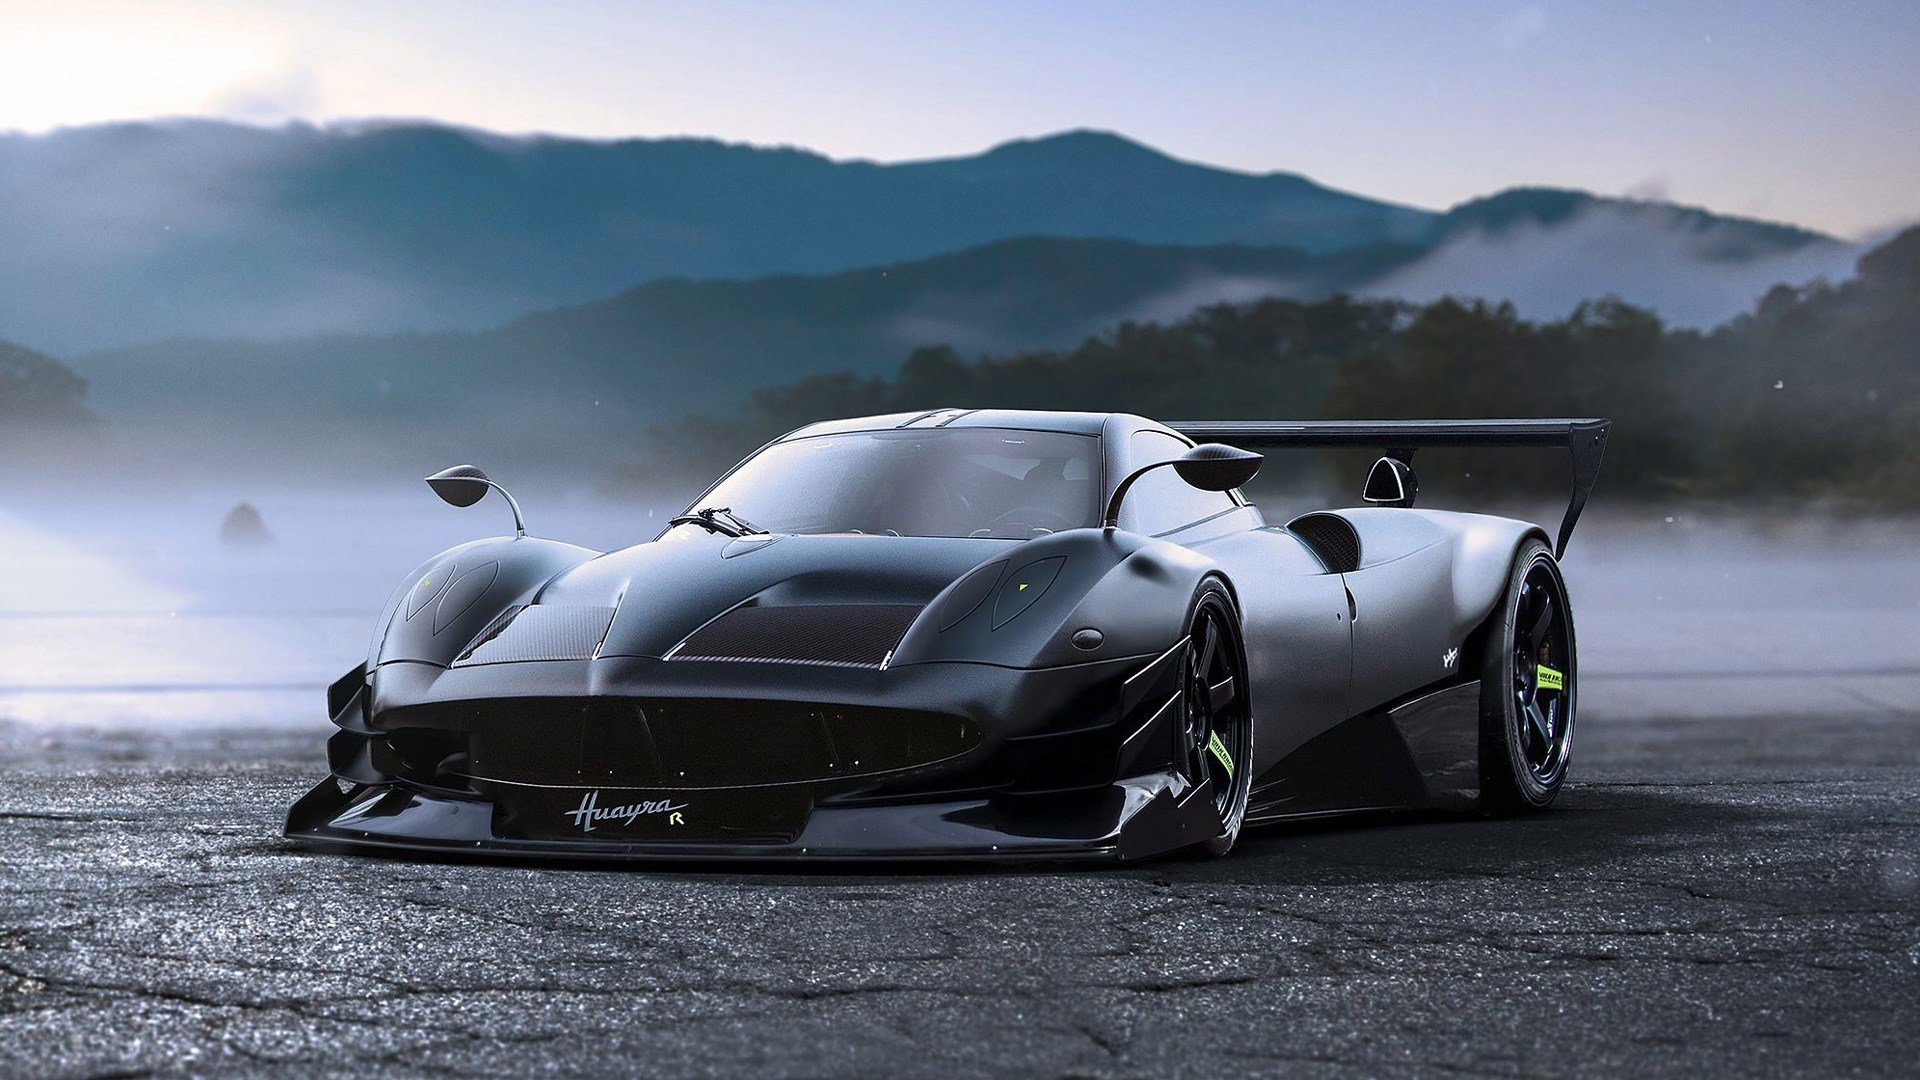 Latest Pagani Huayra R Concept Wallpaper Hd Car Wallpapers Id Free Download